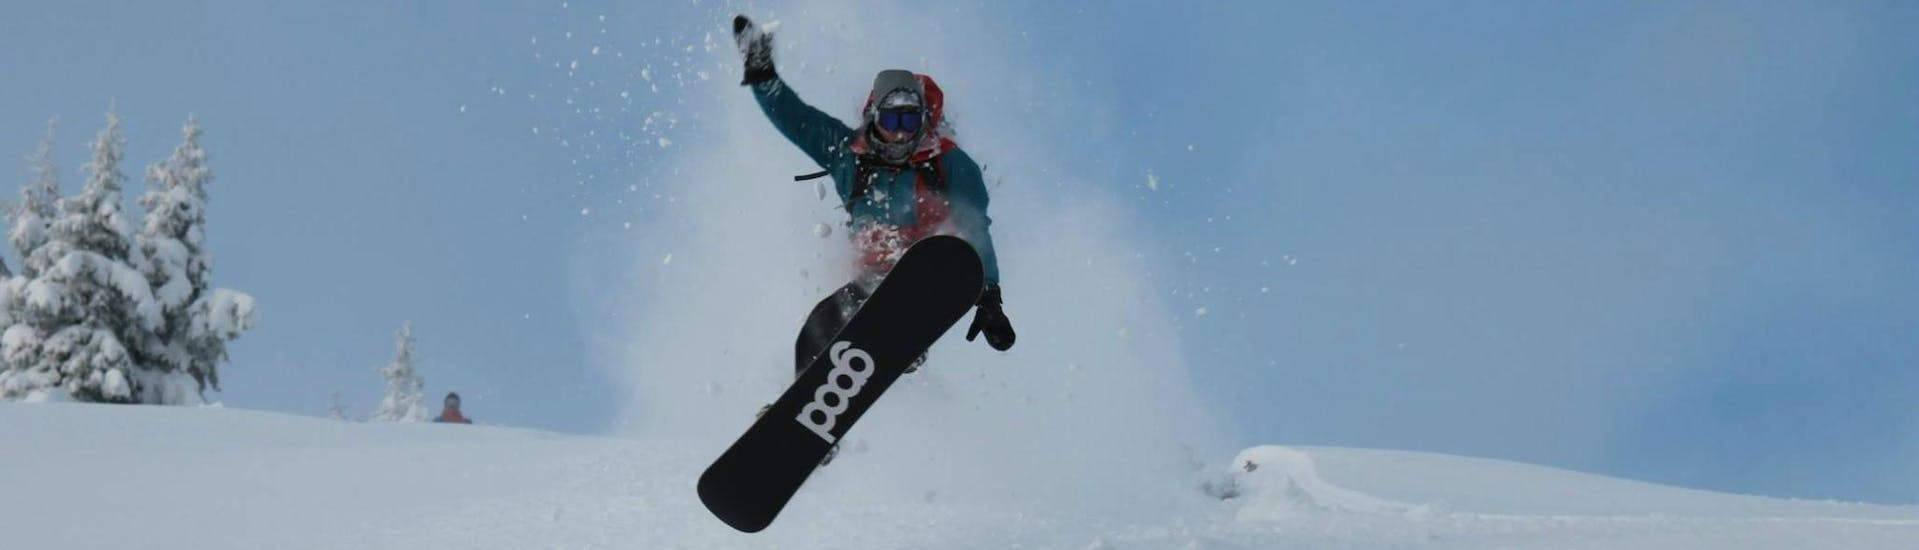 Freestyle Snowboarding Lessons for All Levels